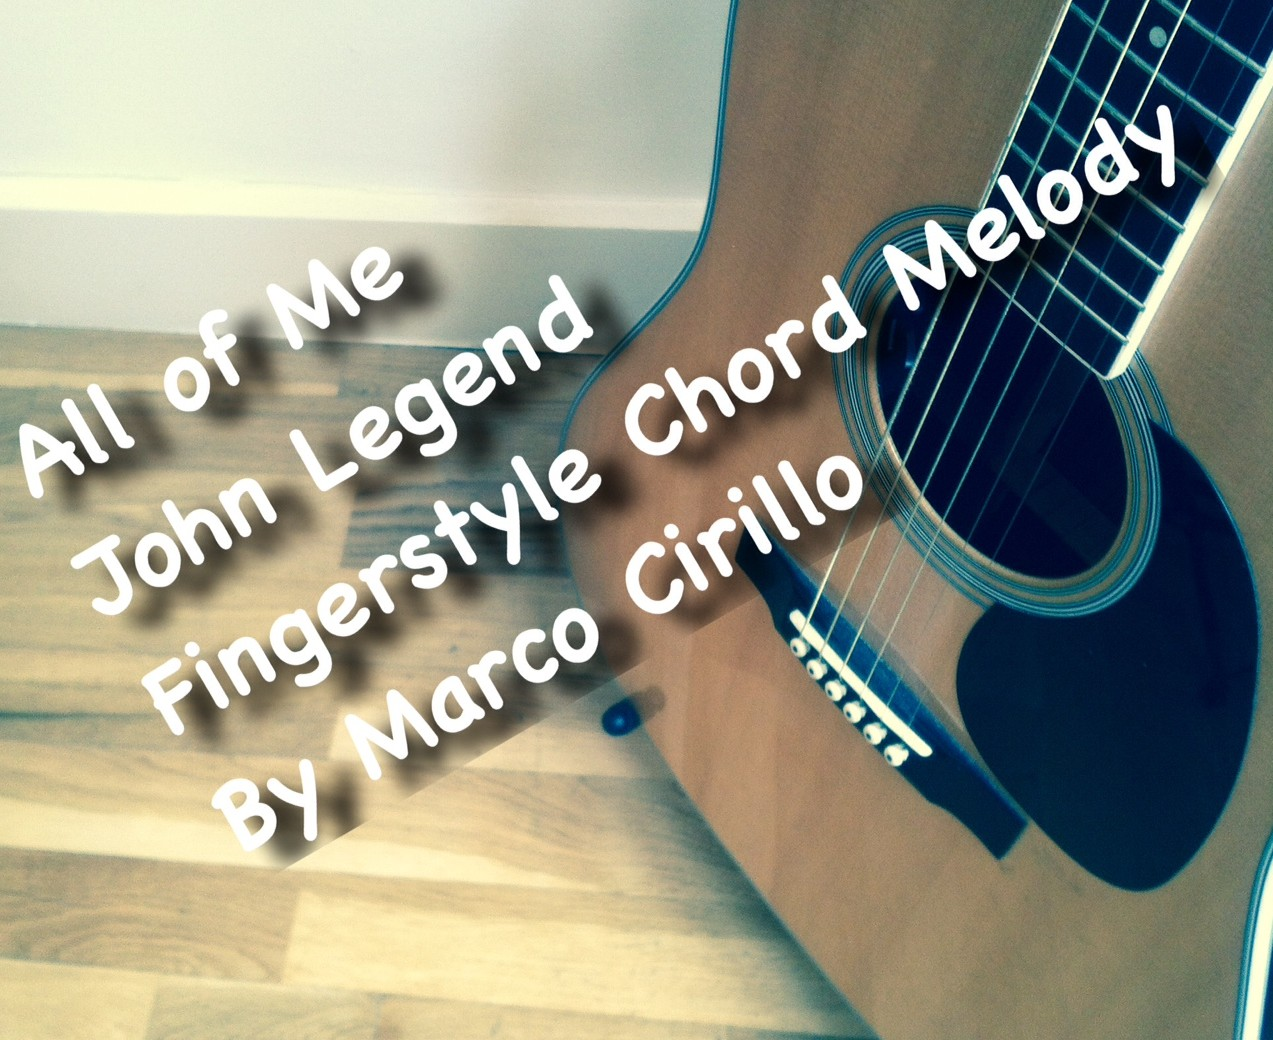 John legend all of me guitar lesson fingerstyle and chords melody john legend all of me fingerstyle chord melody guitar lesson guitar lesson in kensington central hexwebz Gallery